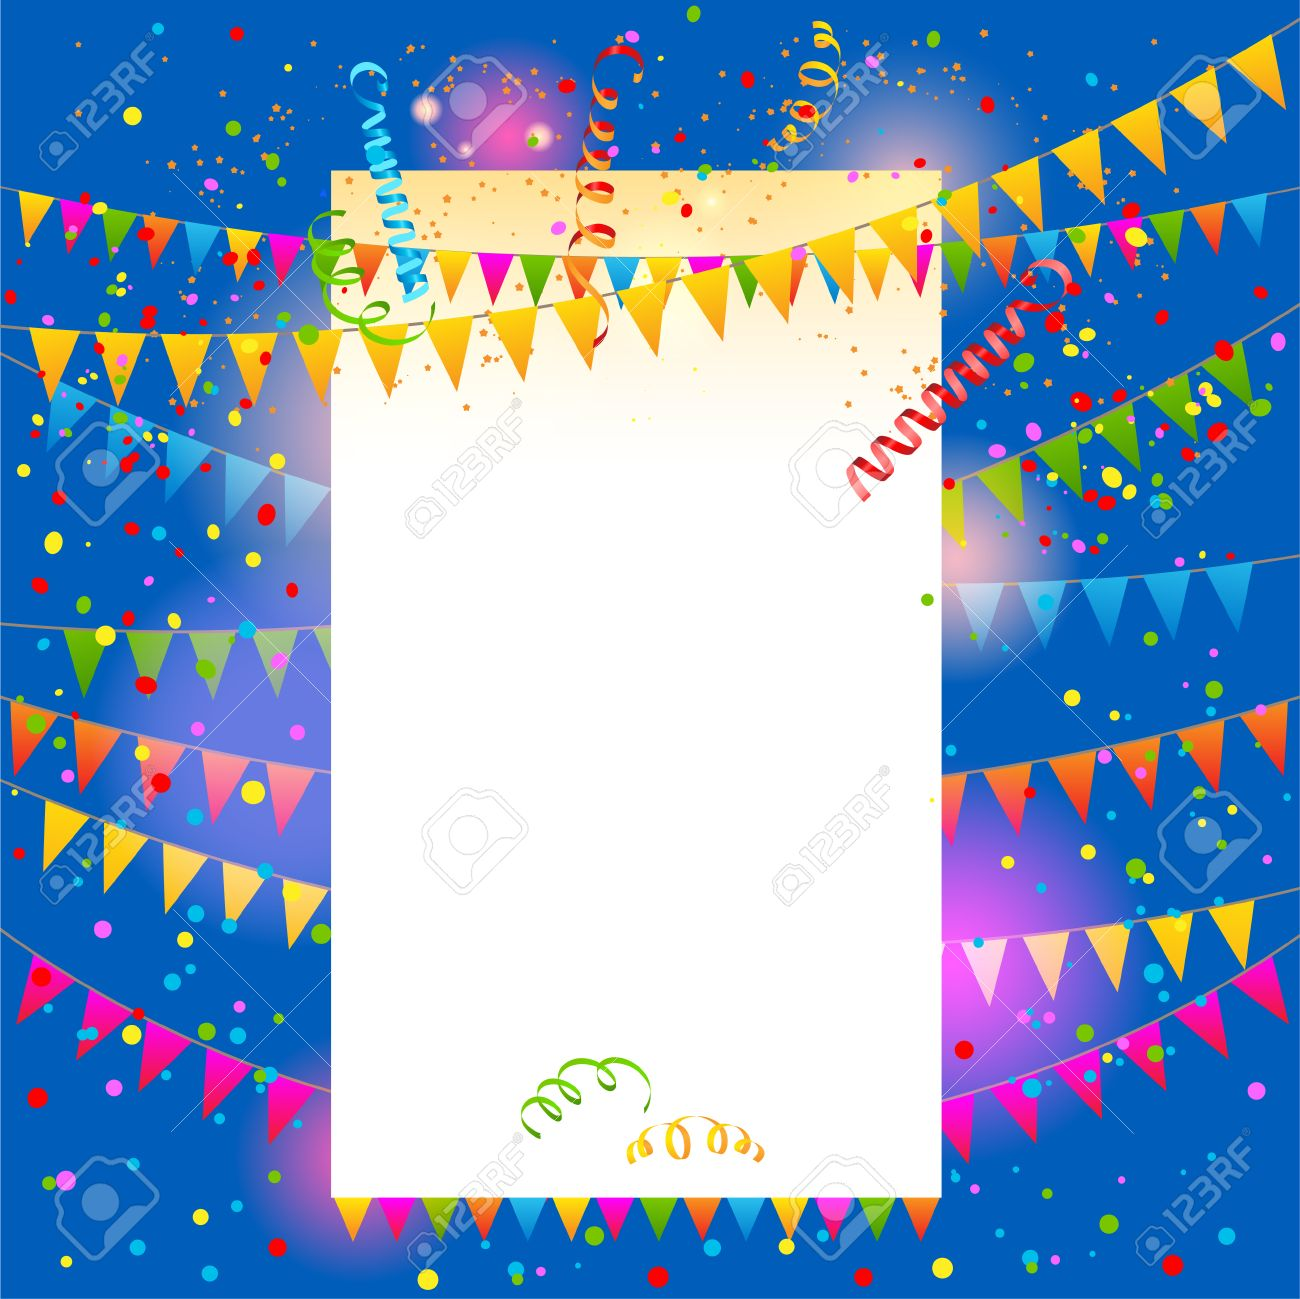 holiday party background flags vector festive illustration holiday party background flags vector festive illustration place for text stock vector